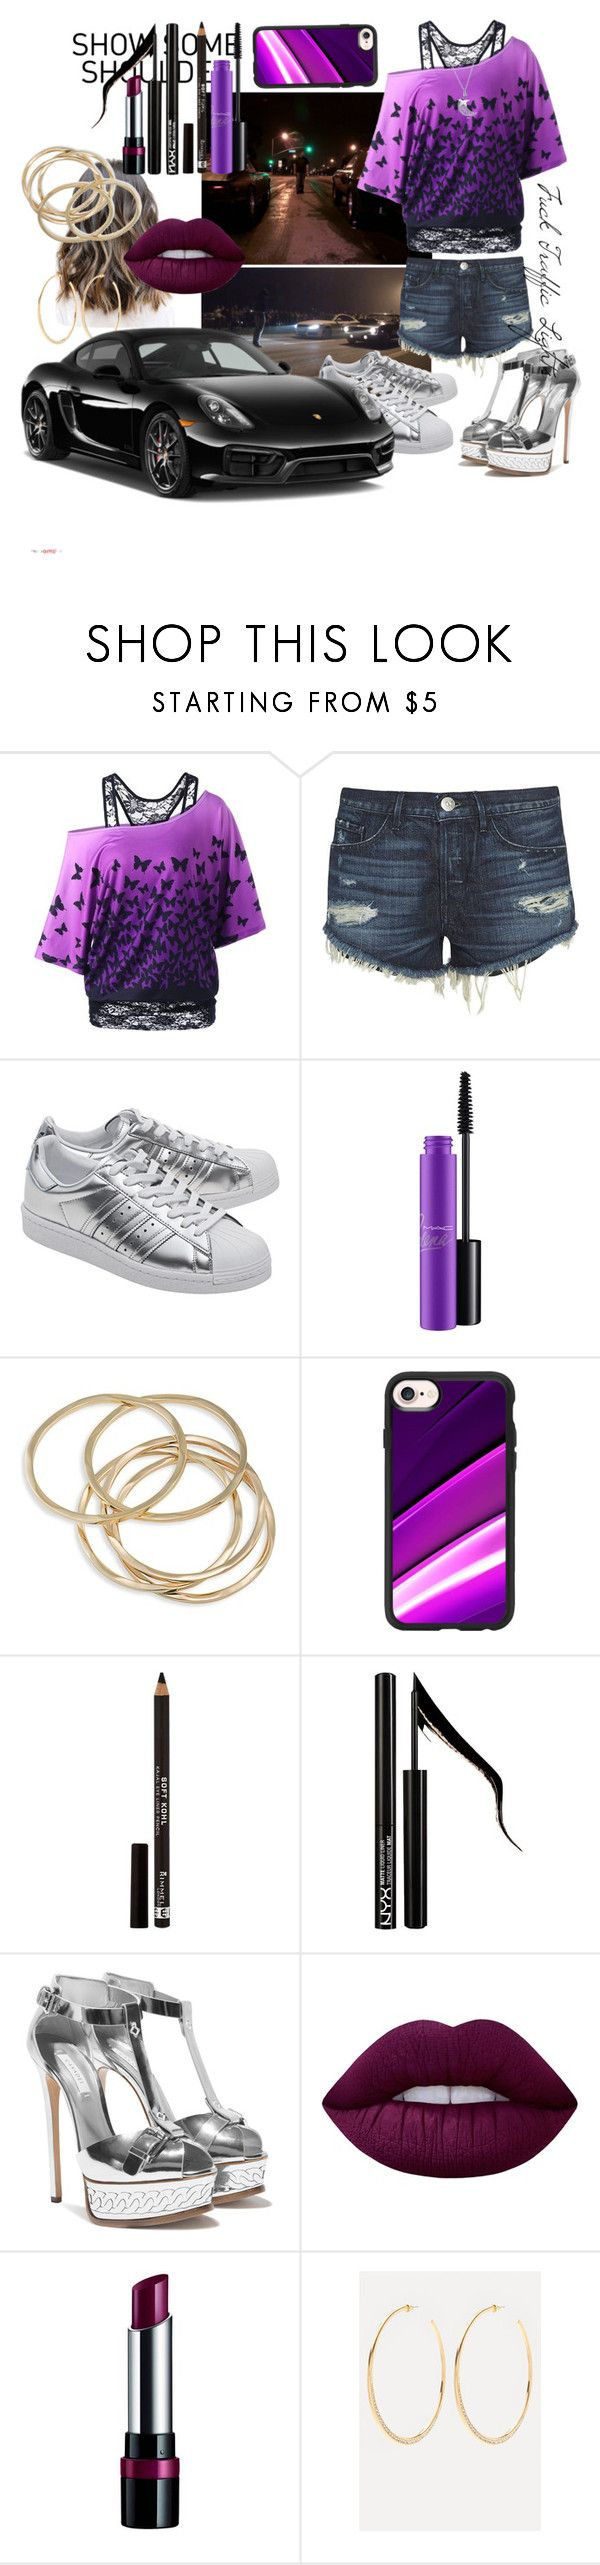 """""""083 Road Racer - Female Edition"""" by berry2206 on Polyvore featuring Mode, 3x1, adidas Originals, MAC Cosmetics, ABS by Allen Schwartz, Casetify, Rimmel, Forever 21, Lime Crime und Porsche"""